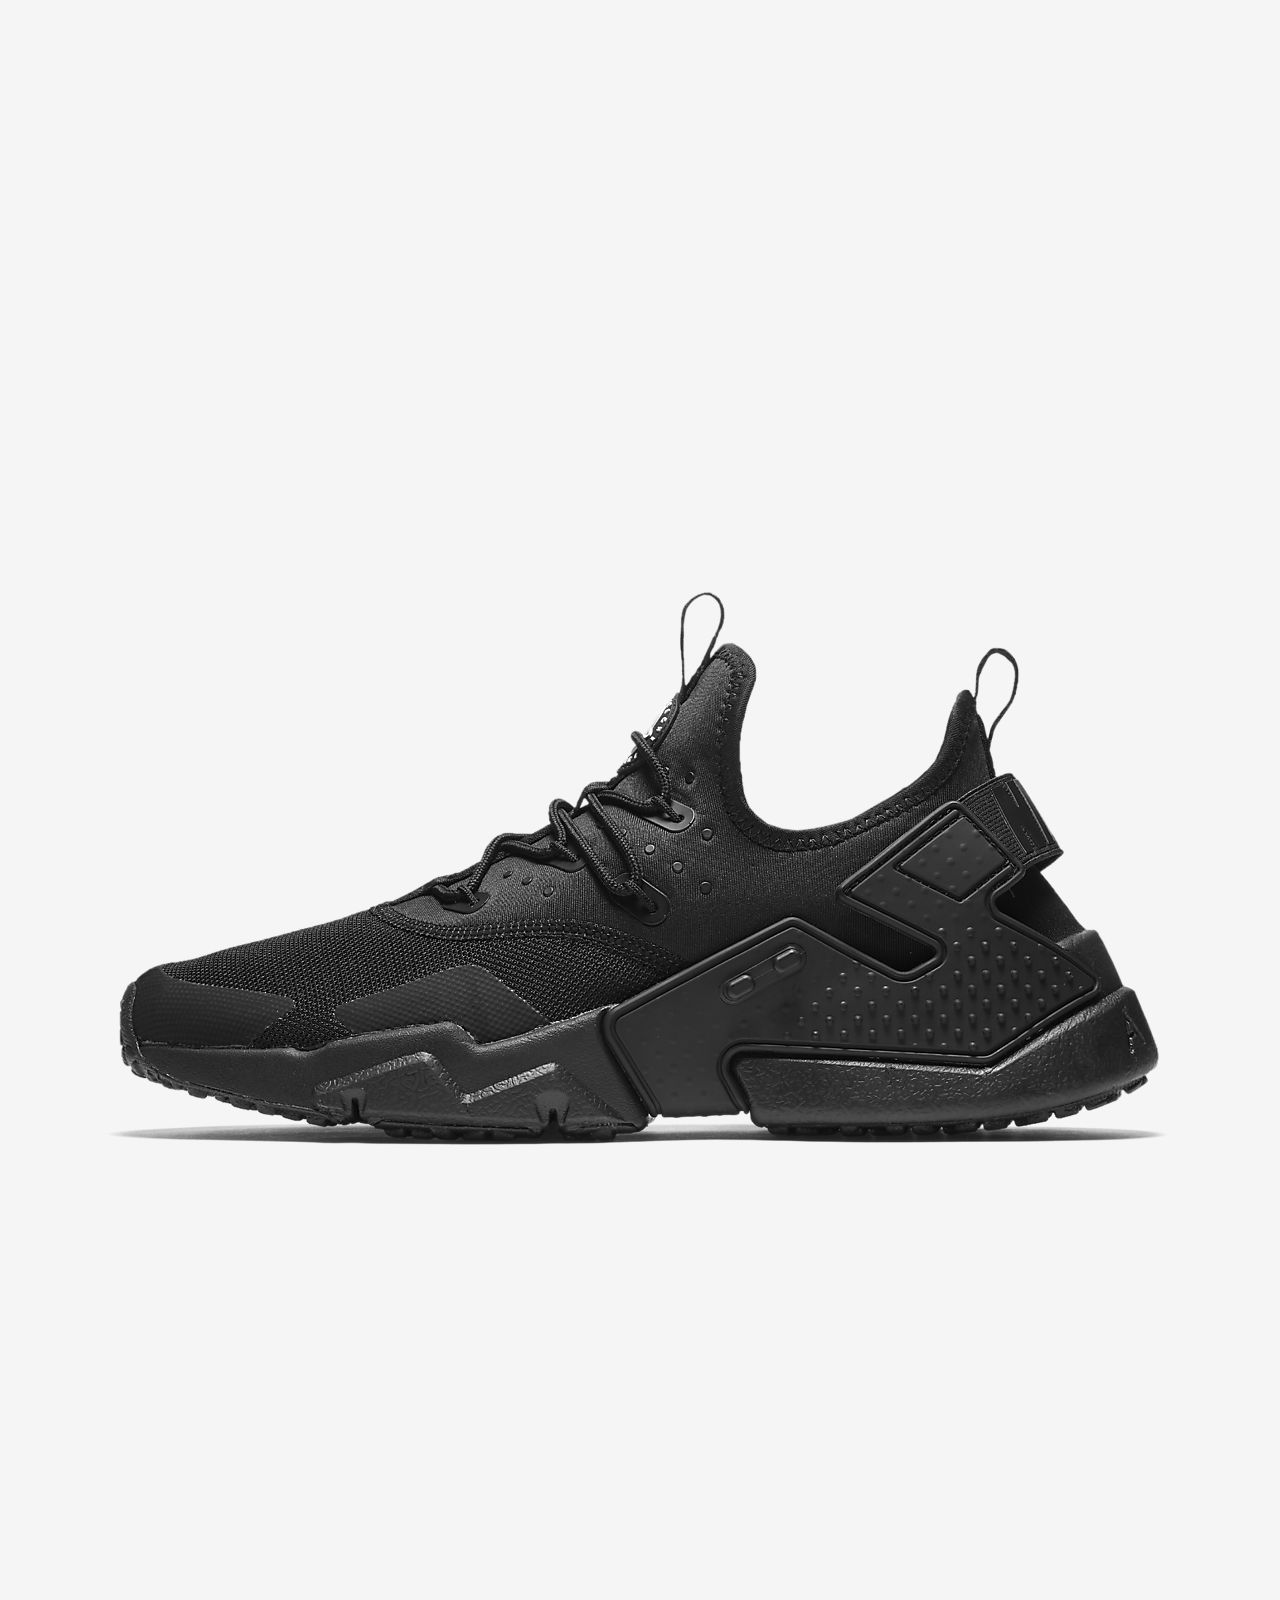 5186fc5e5 Nike Men's Shoe Huarache Drift in 2019 | Papa's shoes | Nike air ...